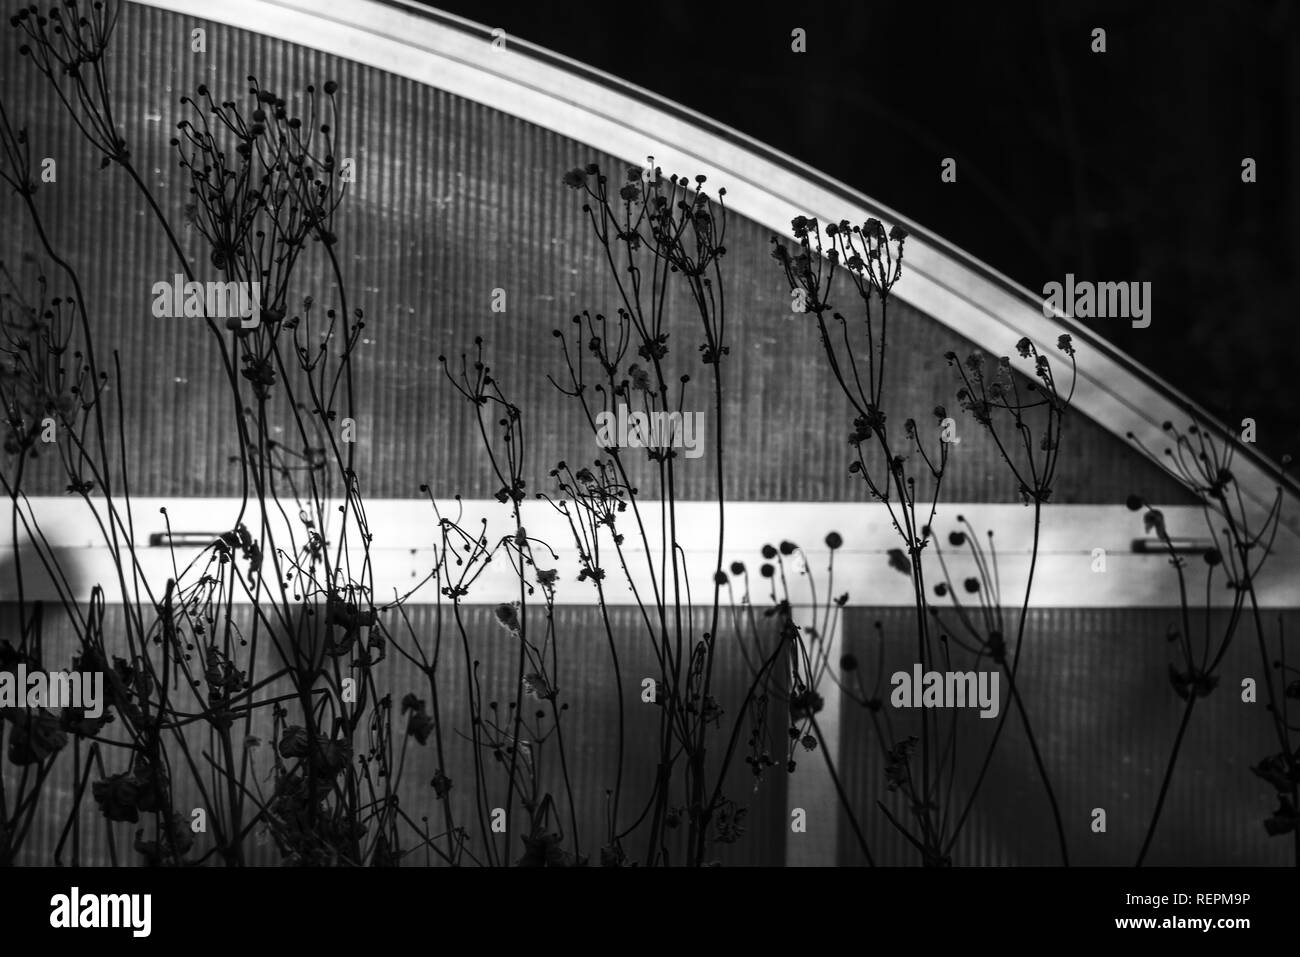 monochrome melancholic wintermood photo of dried plants and the silver frame of a swimming pool - Stock Image